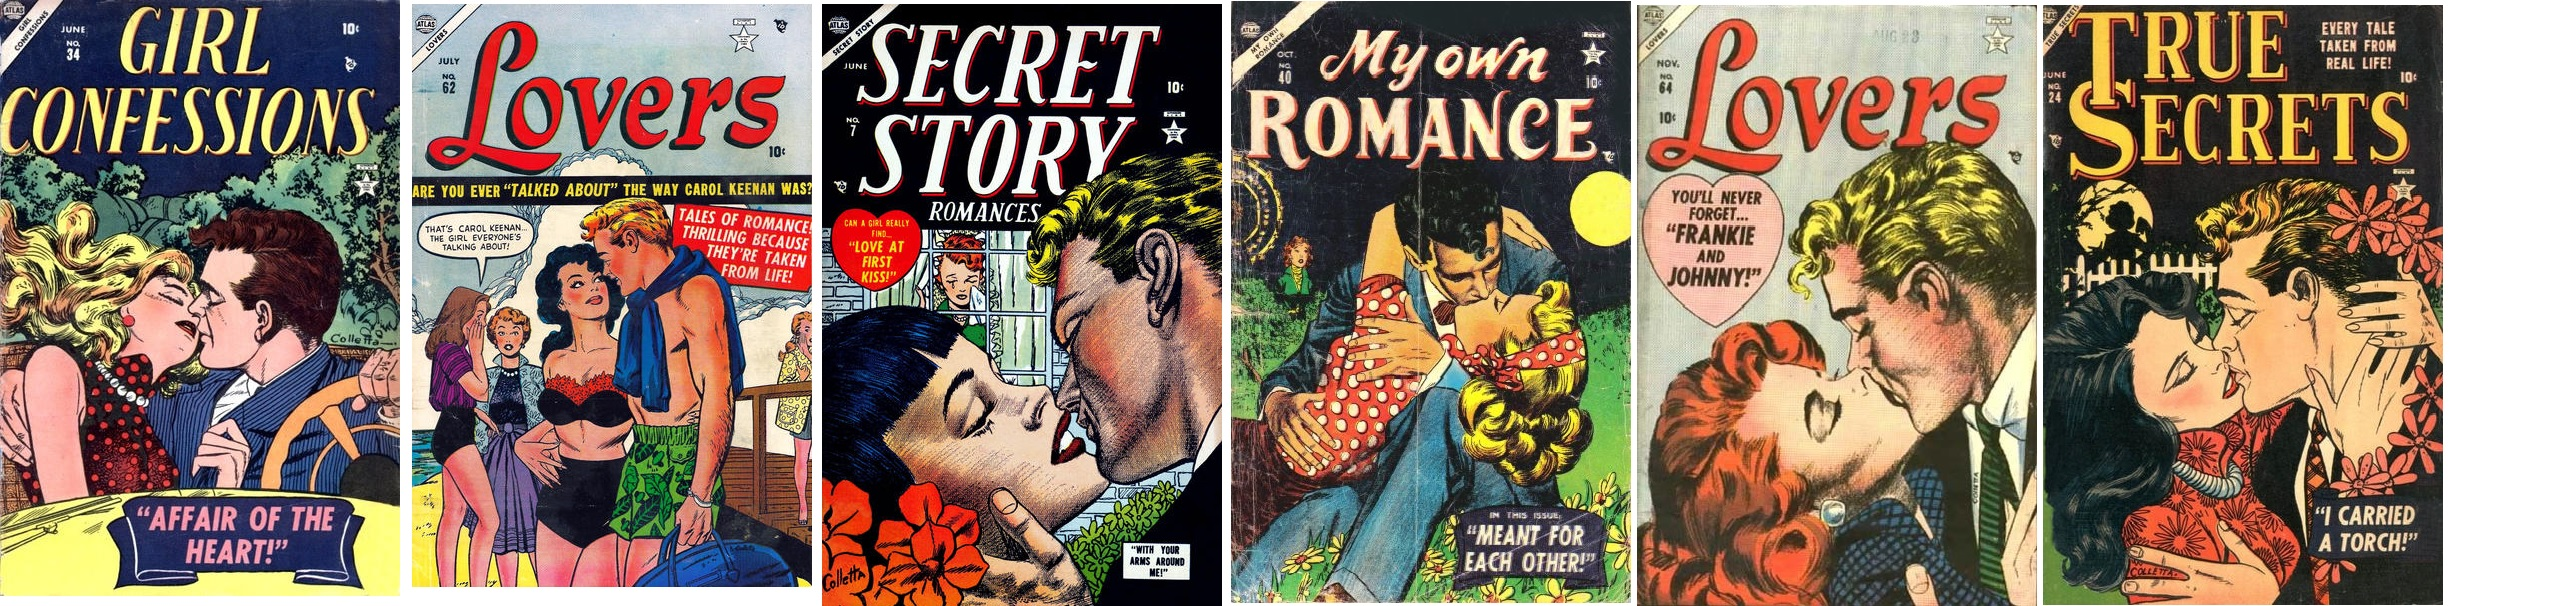 Vince Colletta Romance Art